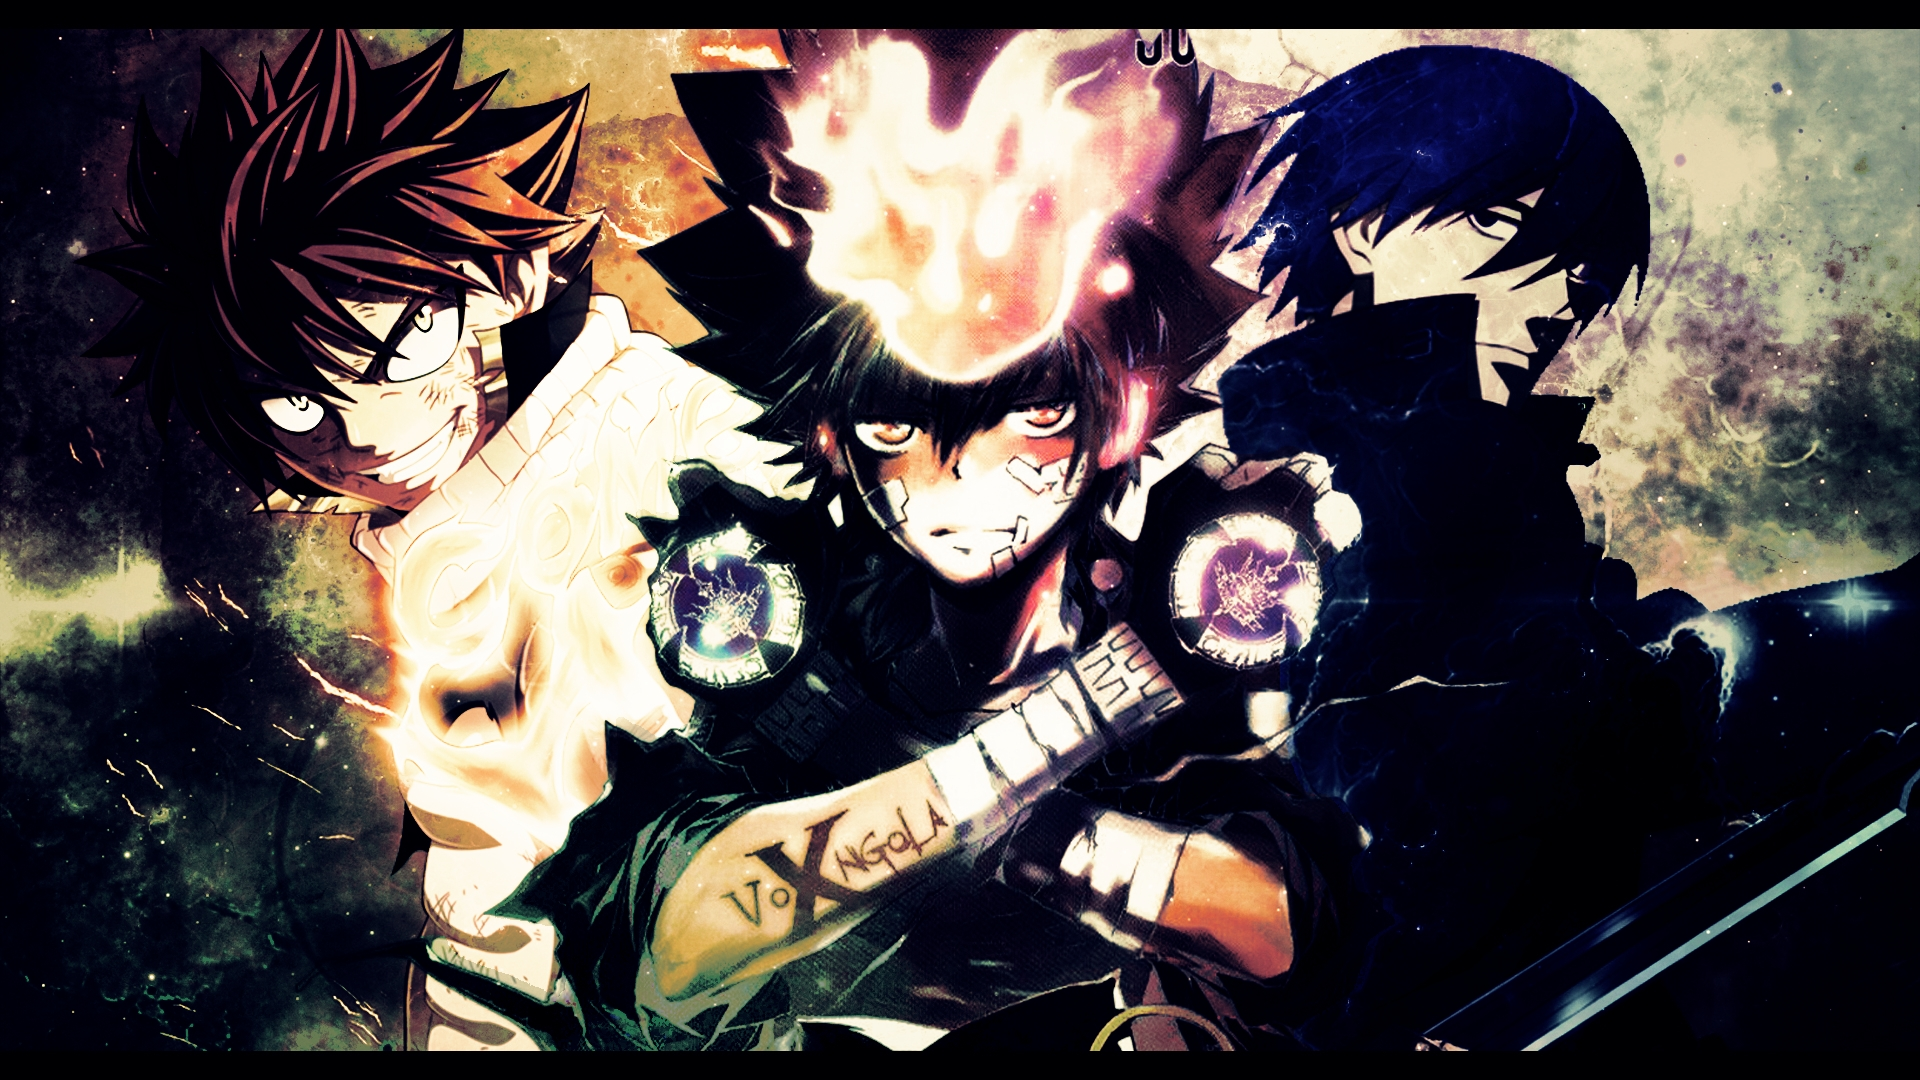 Pc Anime Hd Wallpapers Wallpaper Cave